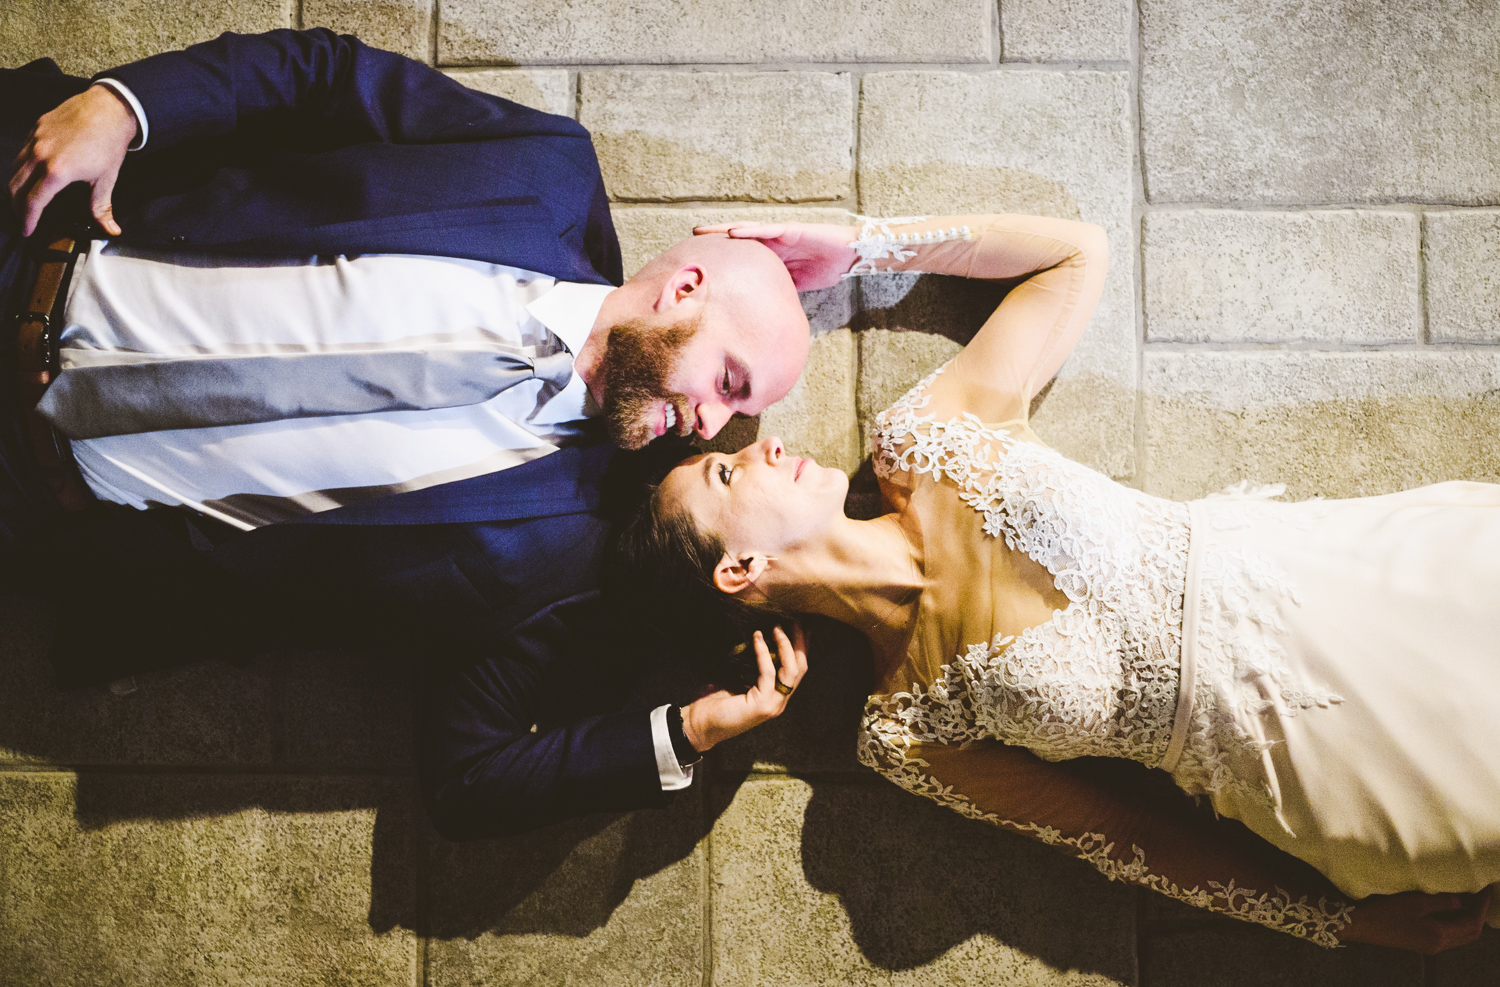 039 - night portrait of bride and groom laying down.jpg